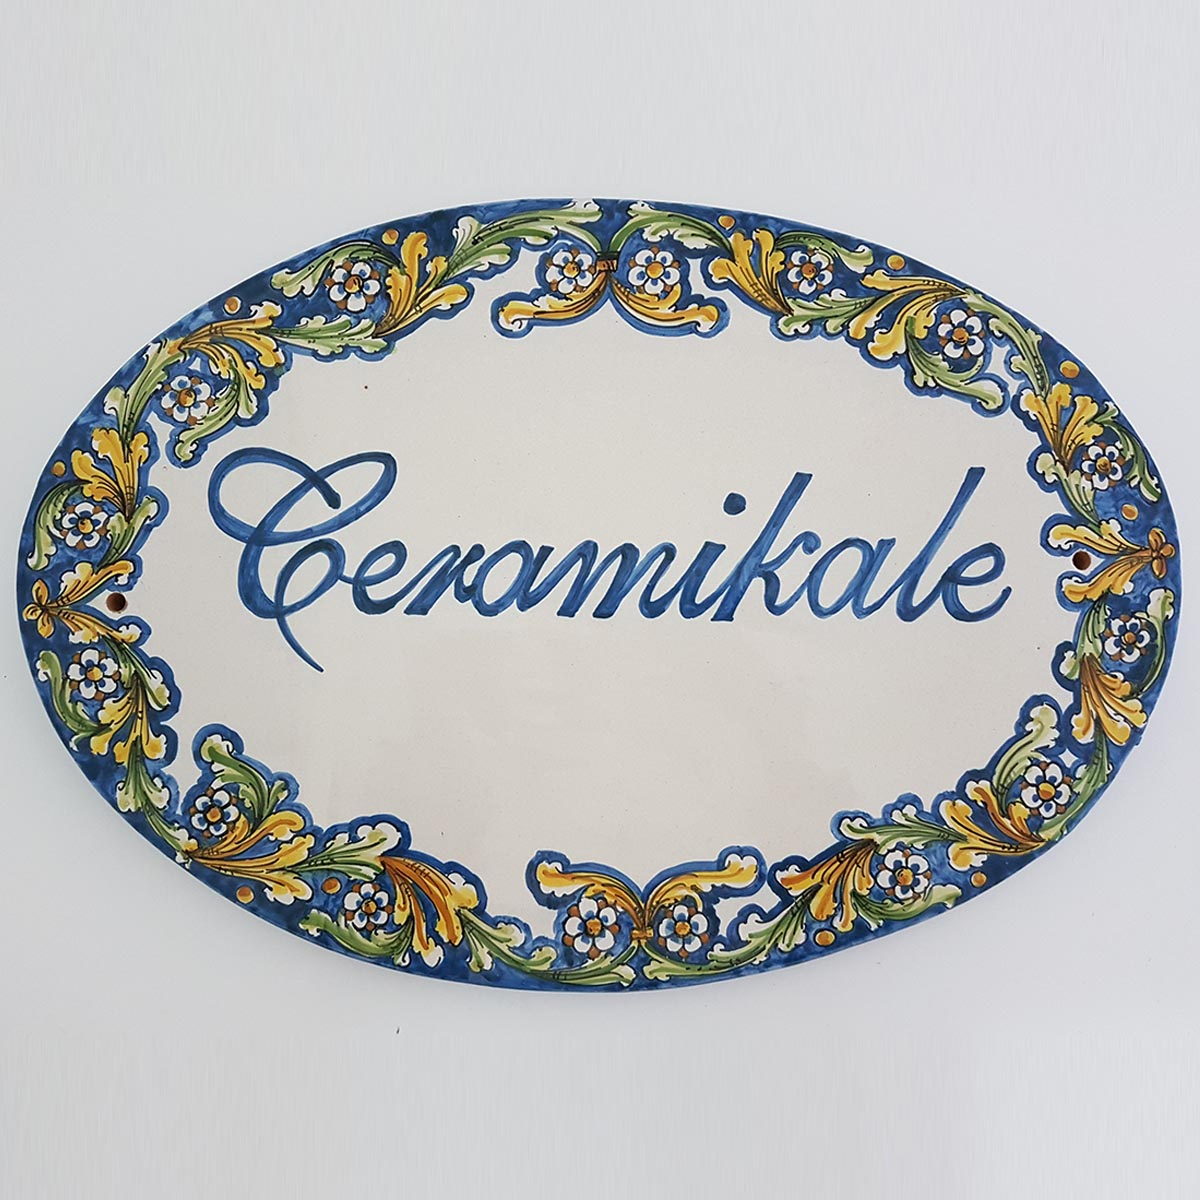 Piastrelle by Ceramikale